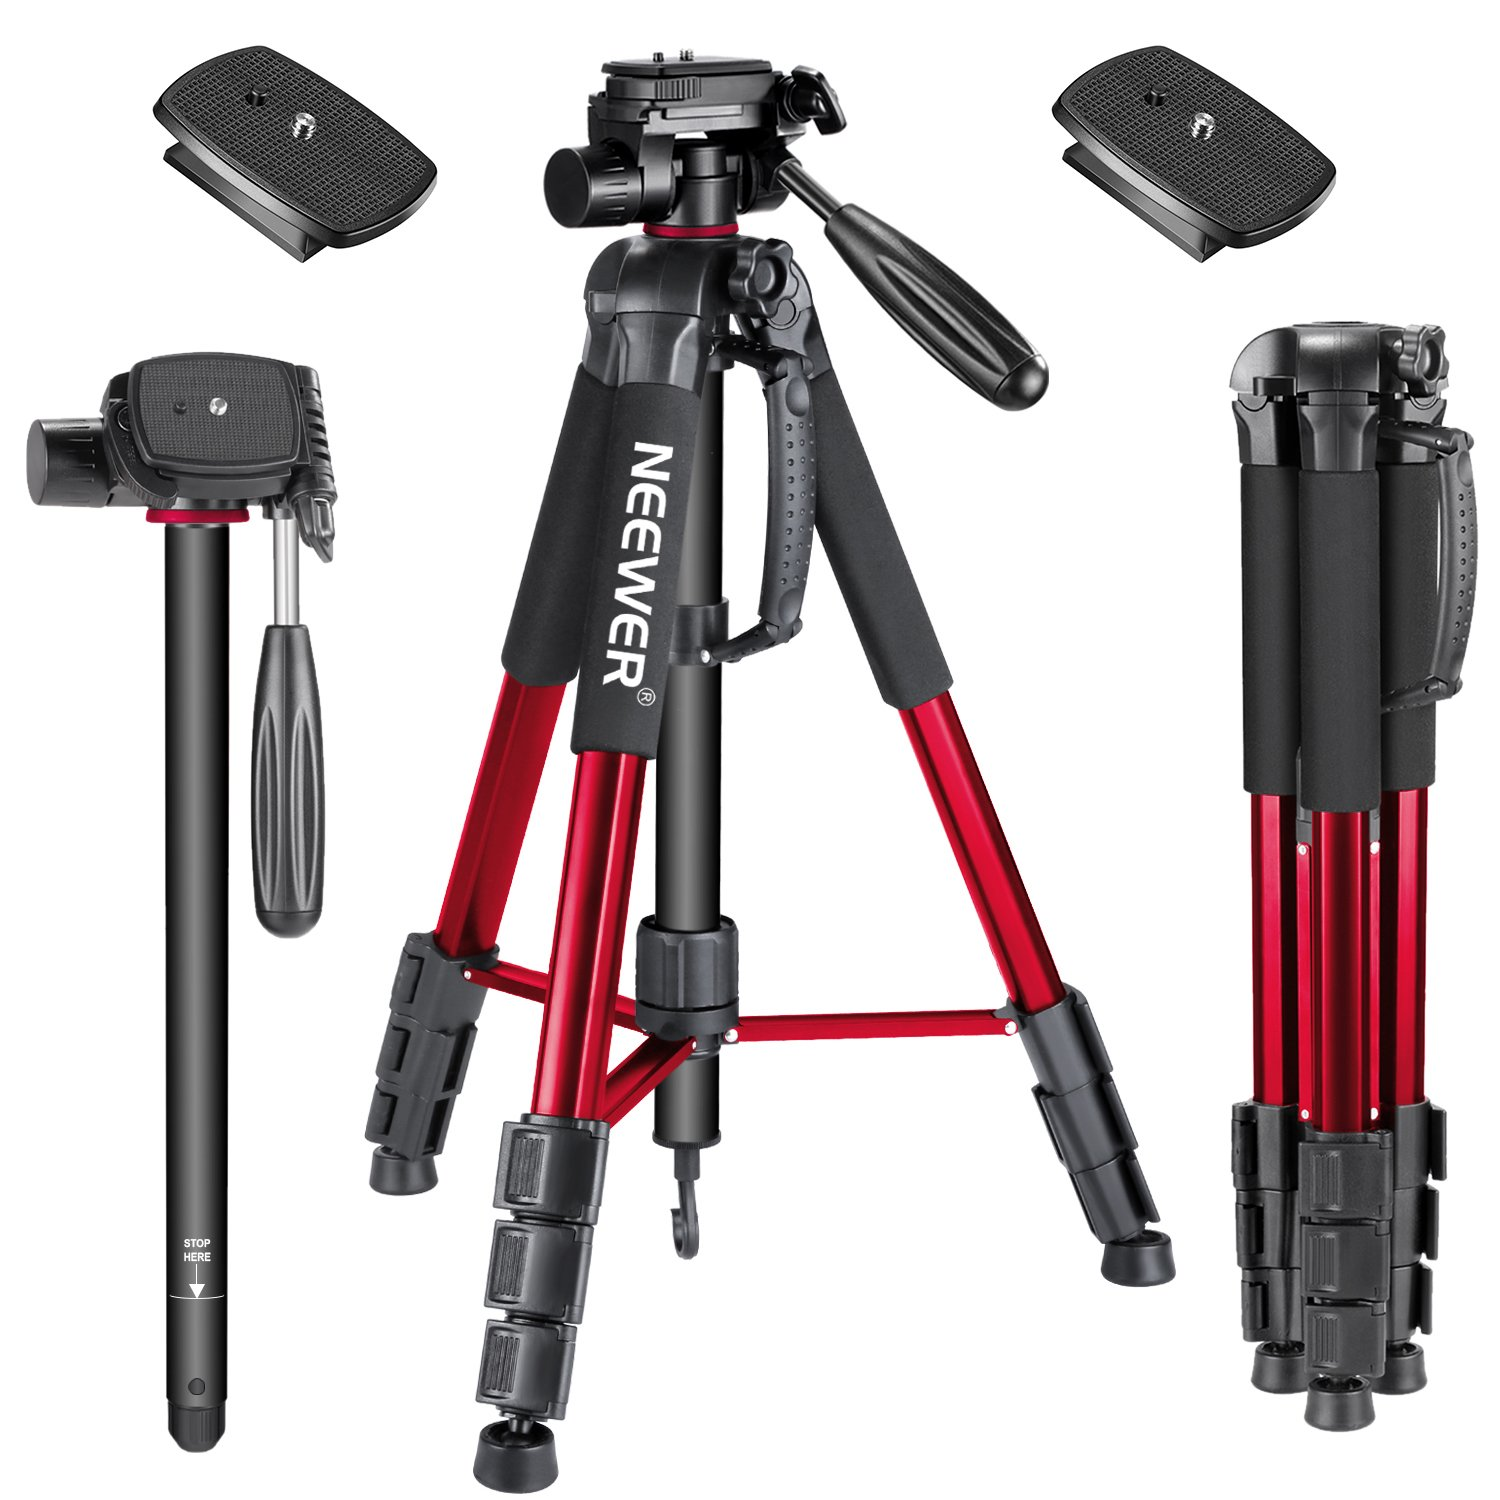 Neewer 70inches/177centimeters Aluminium Camera Tripod Monopod with 3-Way Swivel Pan Head,2-Pack Quick Shoe Plate,Bag for DSLR Camera,DV Video Camcorder,Load up to 8.8 pounds/4 kilograms Red(SAB264) by Neewer